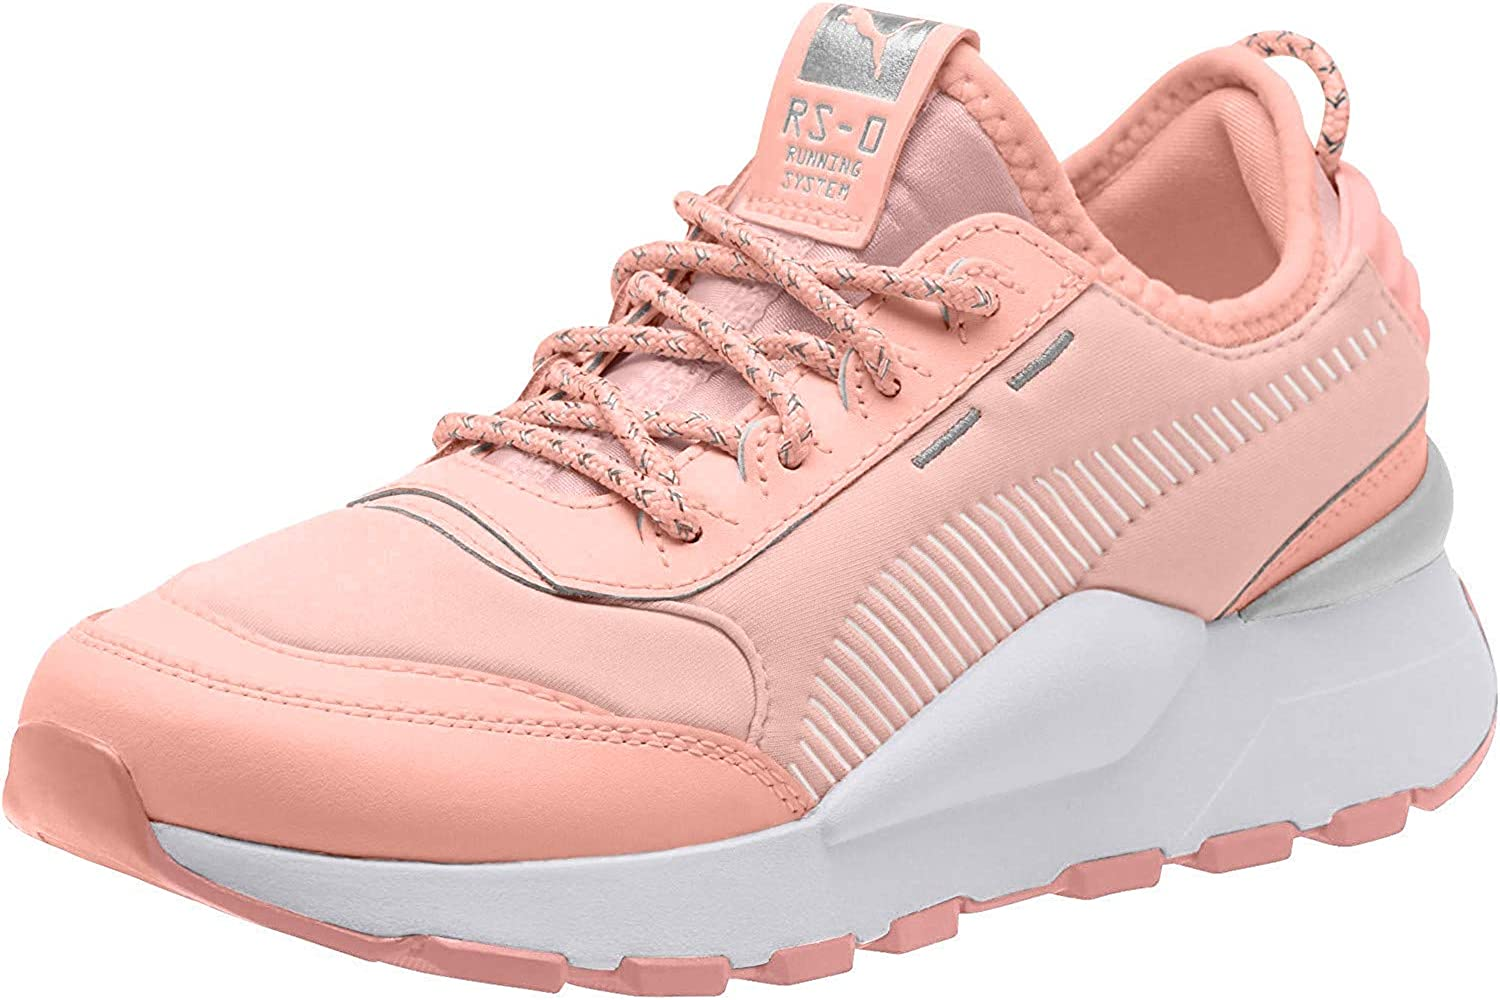 PUMA Kids Girls Rs-0 Trophy Sneakers Shoes Casual - Pink